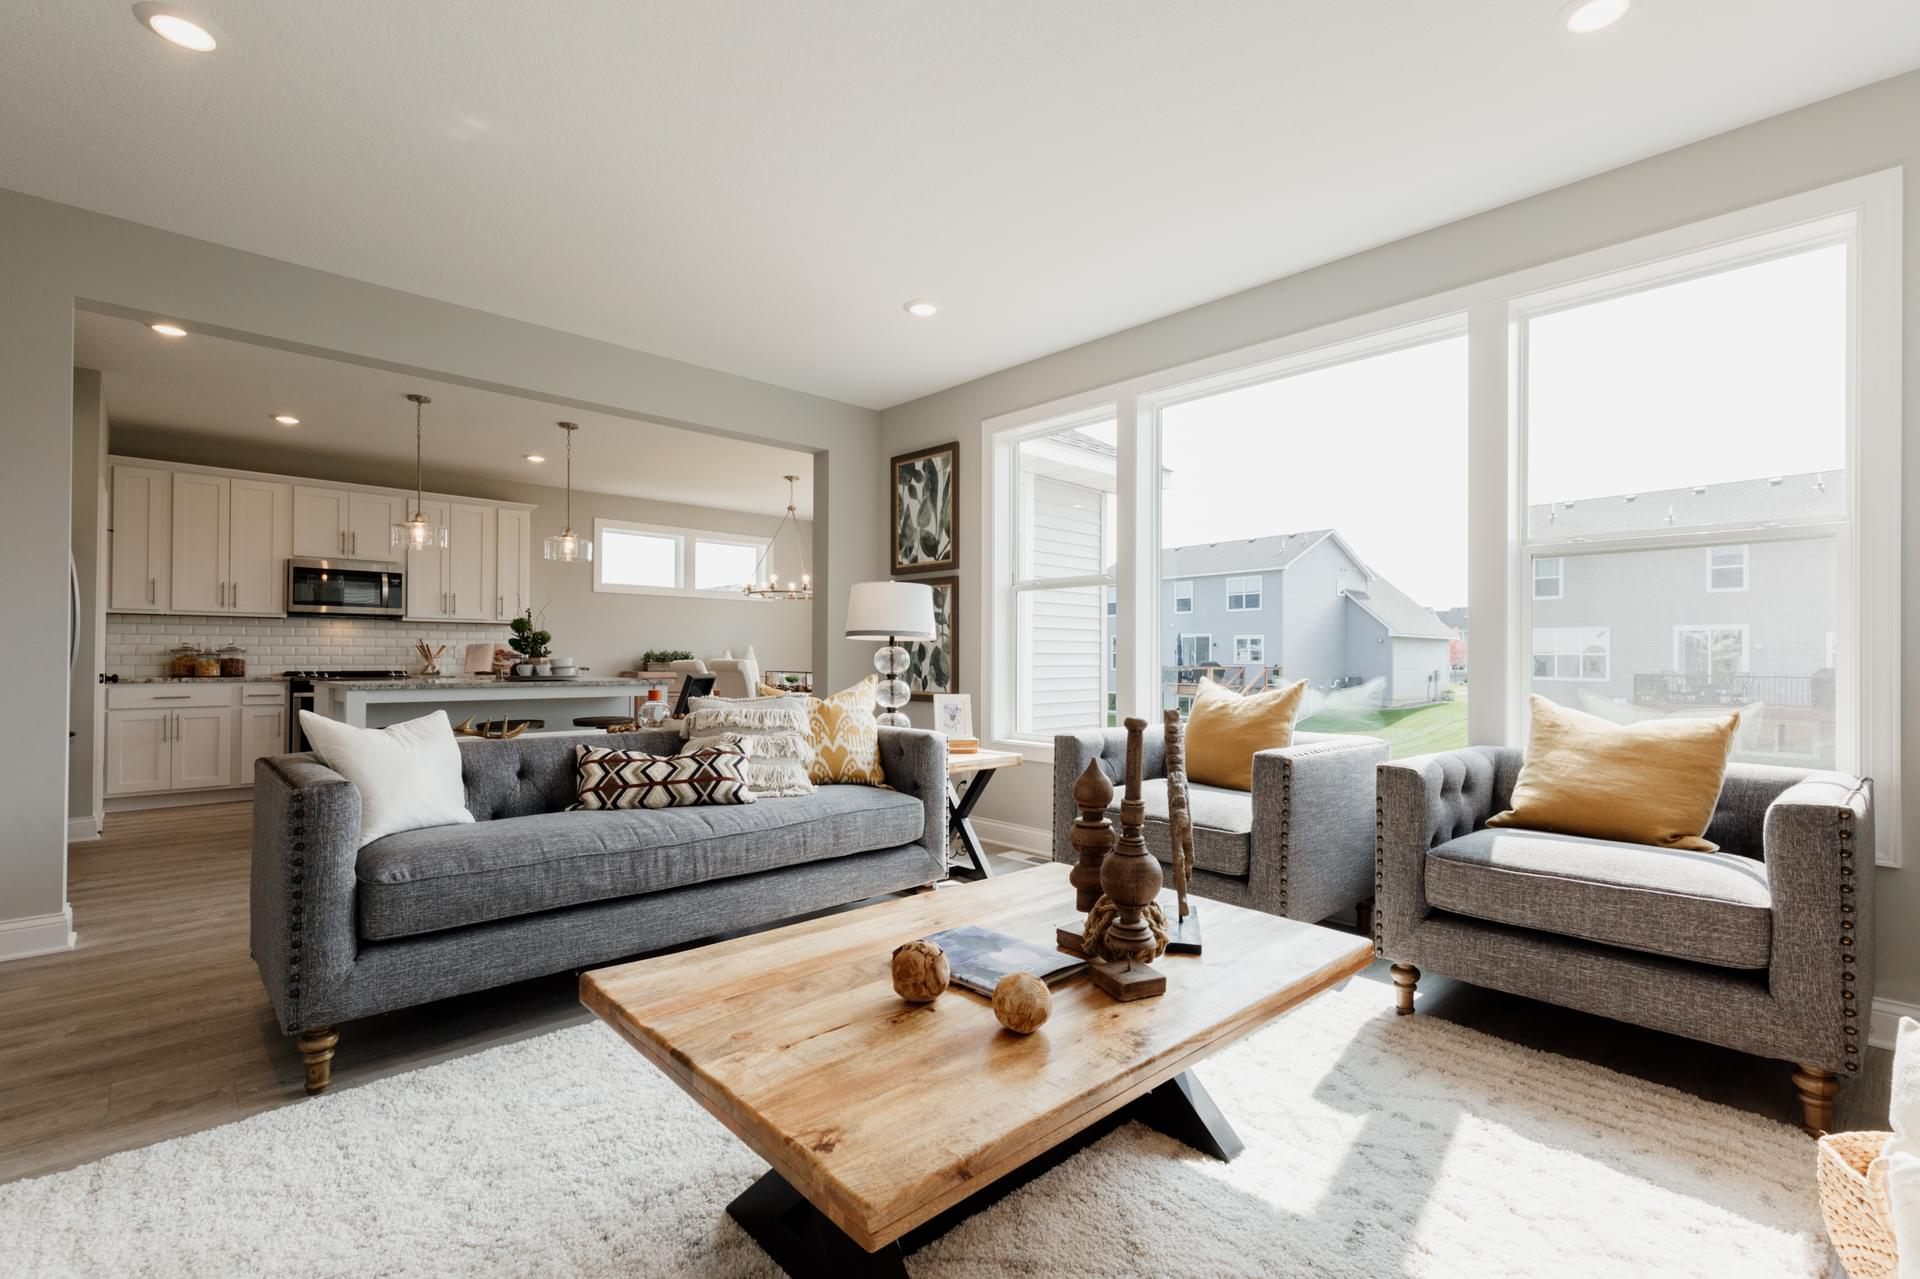 A BETTER HOMEBUILDING EXPERIENCE COMING FALL 2020 TO WOODBURY, MN